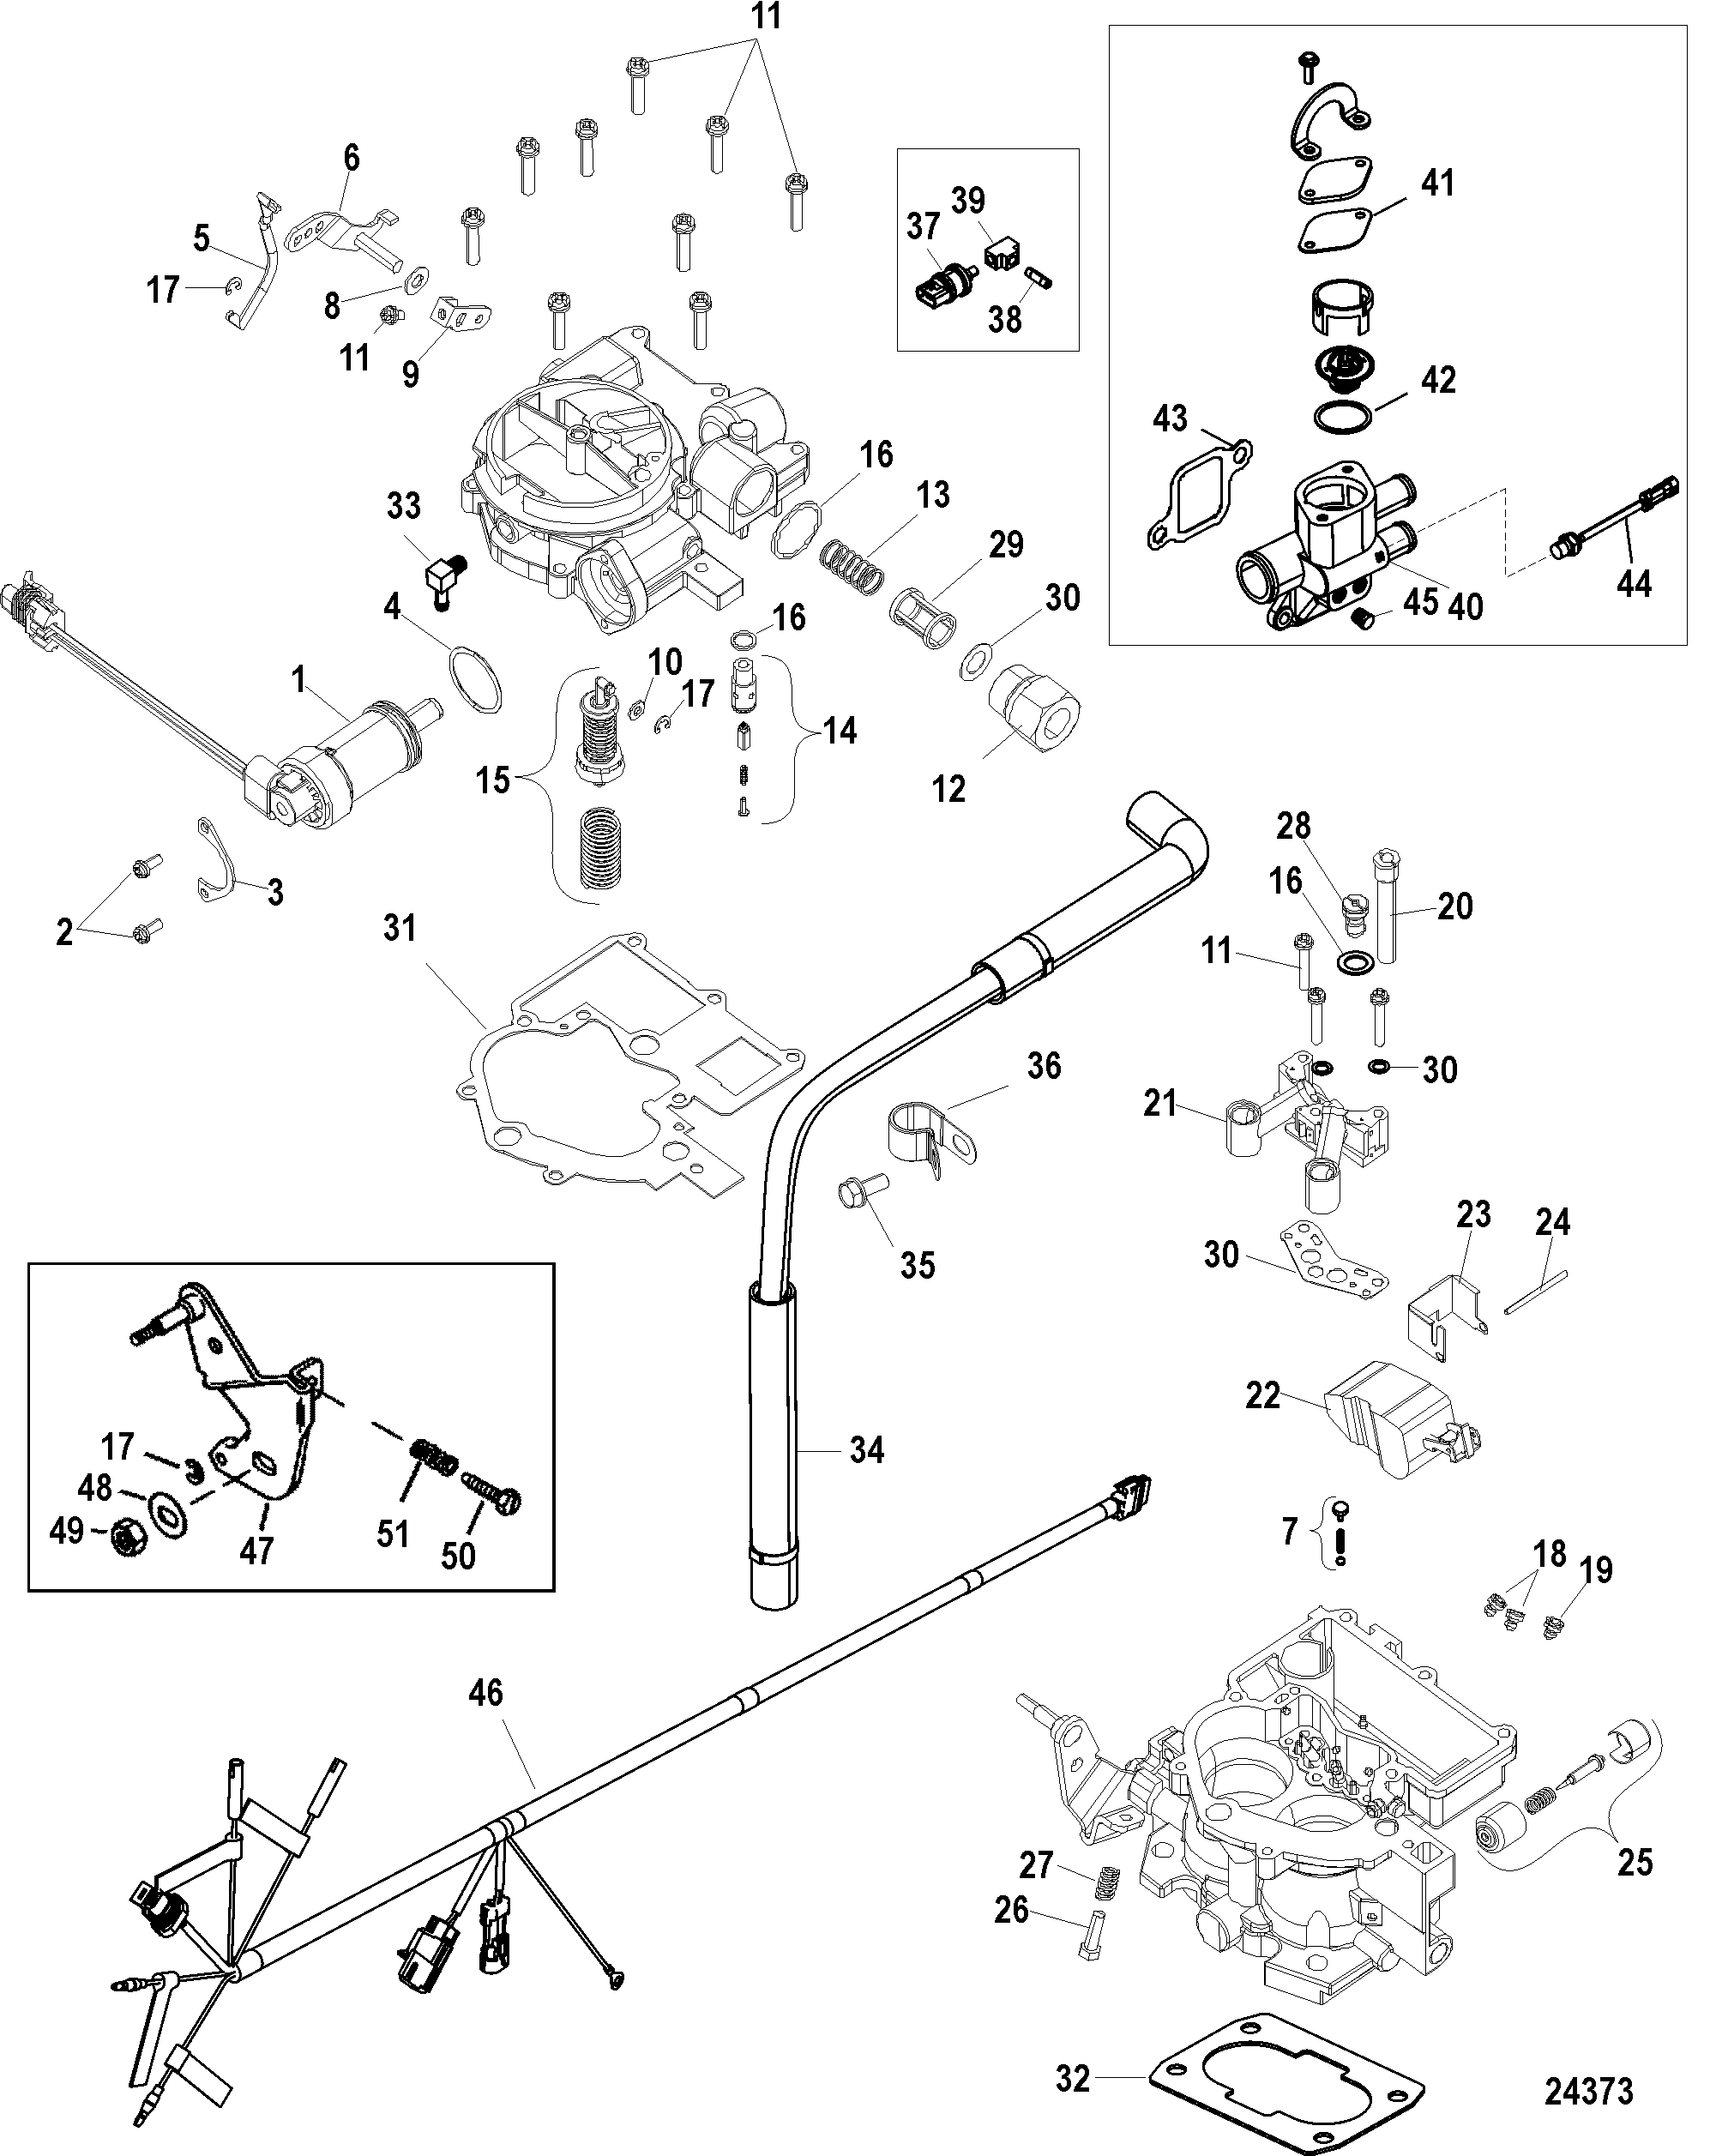 3 0 Mercruiser Fuel Filter Location